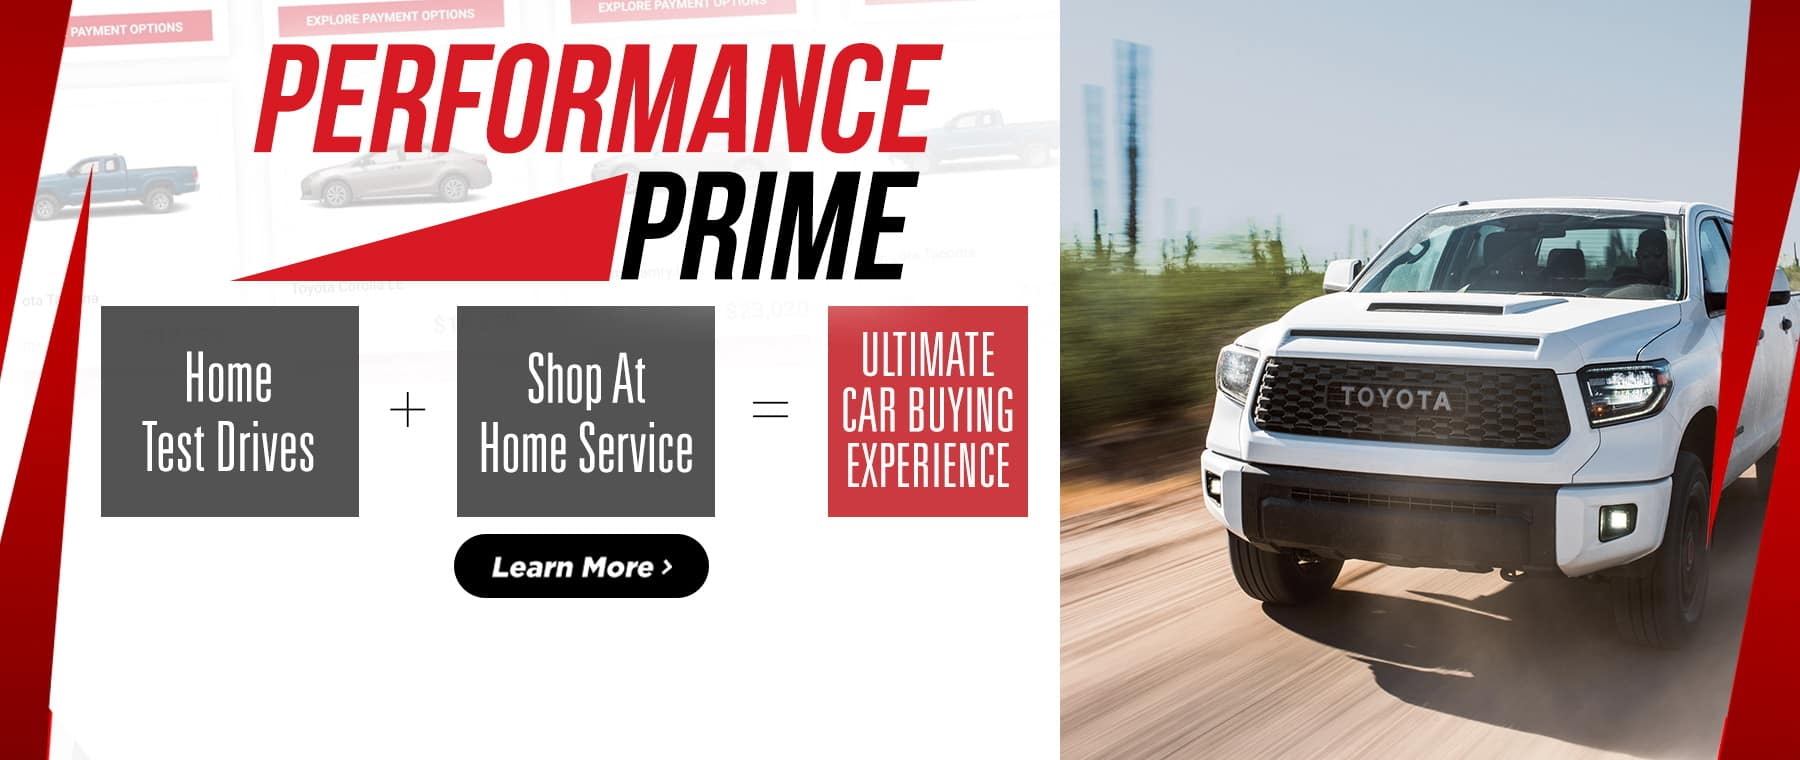 Performance Toyota | Toyota Dealer in Sinking Spring, PA